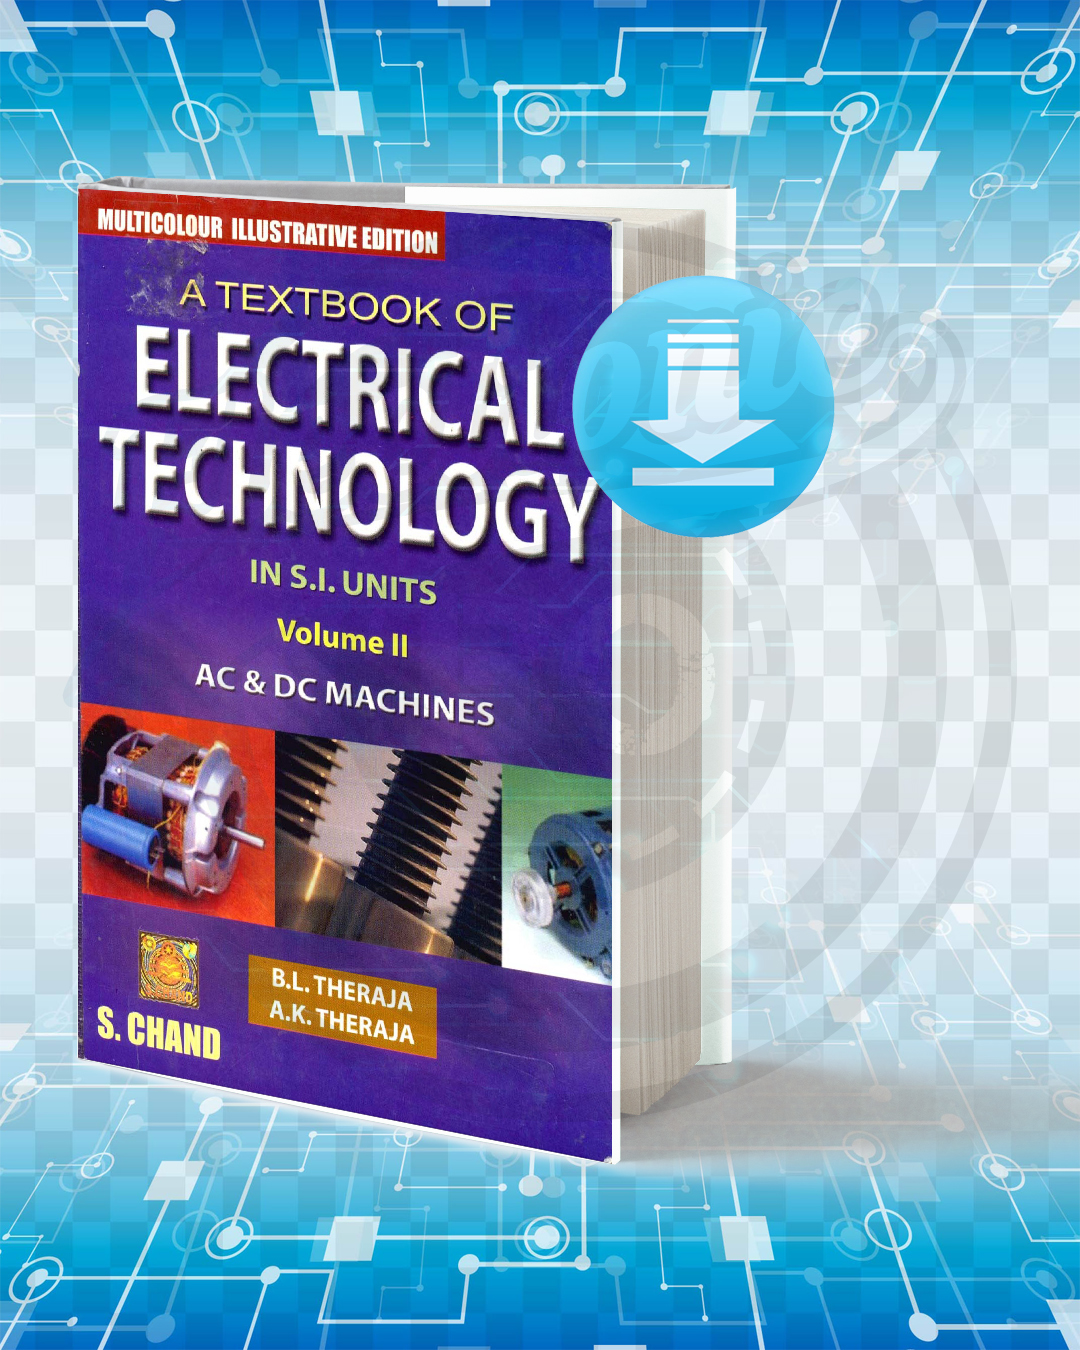 a textbook of electrical technology volume 2 pdf free download